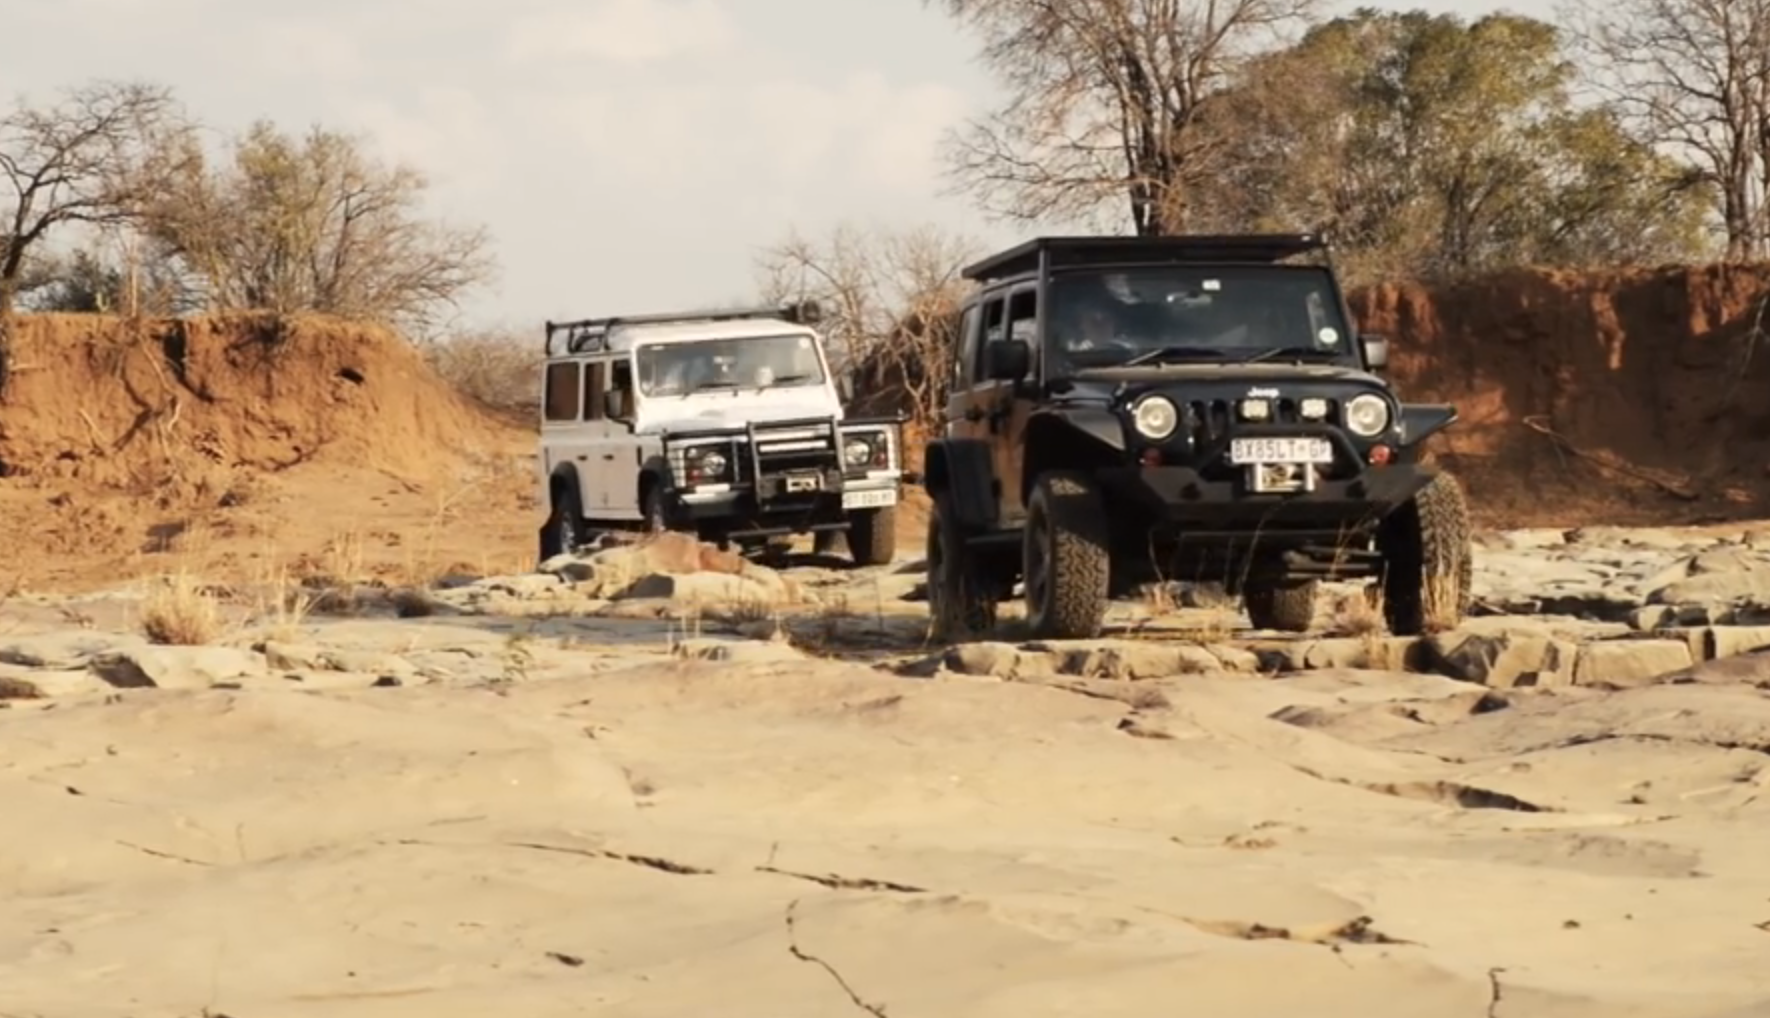 4xoverland Land Rover Defender Vs Jeep Wrangler Land Rover